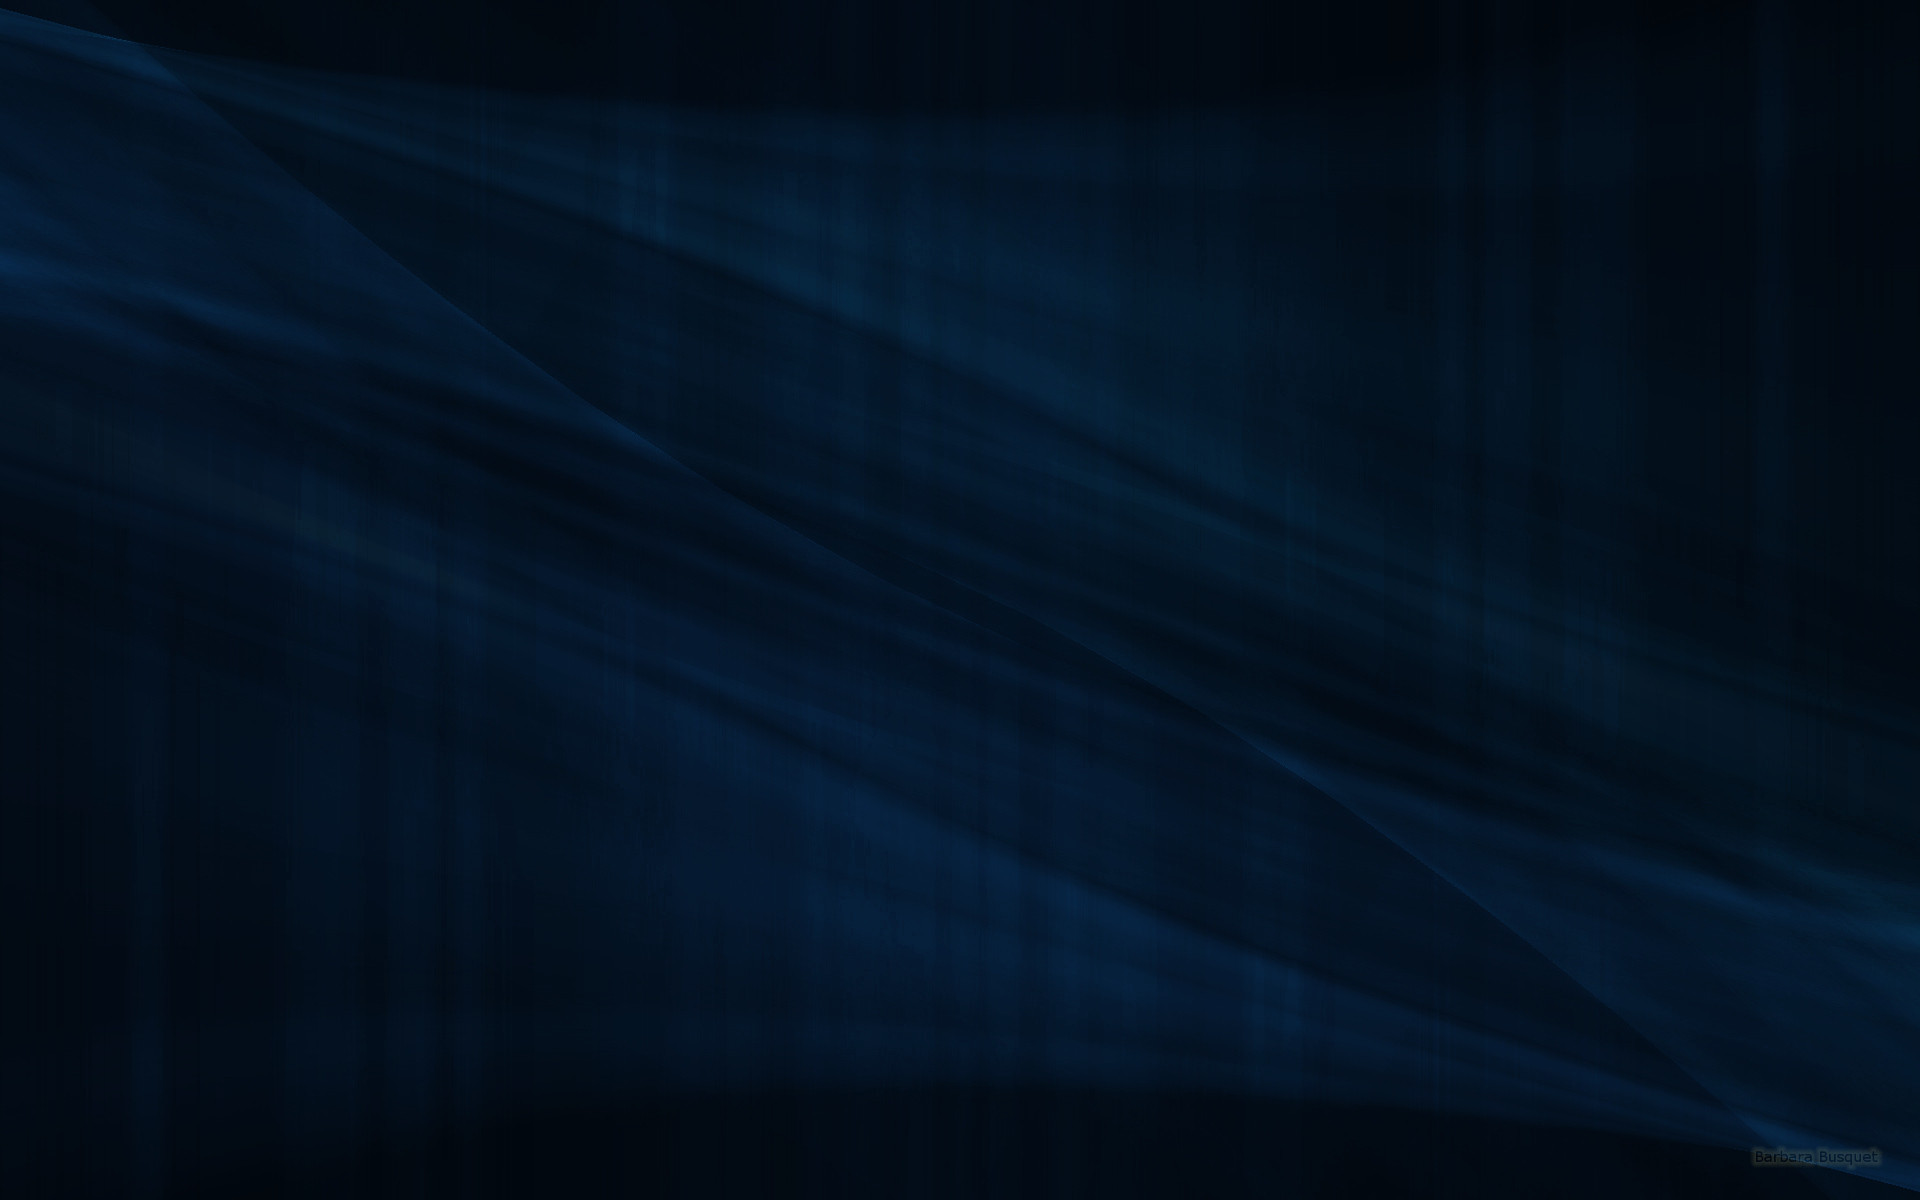 Dark Blue Background Images Wallpapertag: Dark Blue Abstract Wallpaper (70+ Images